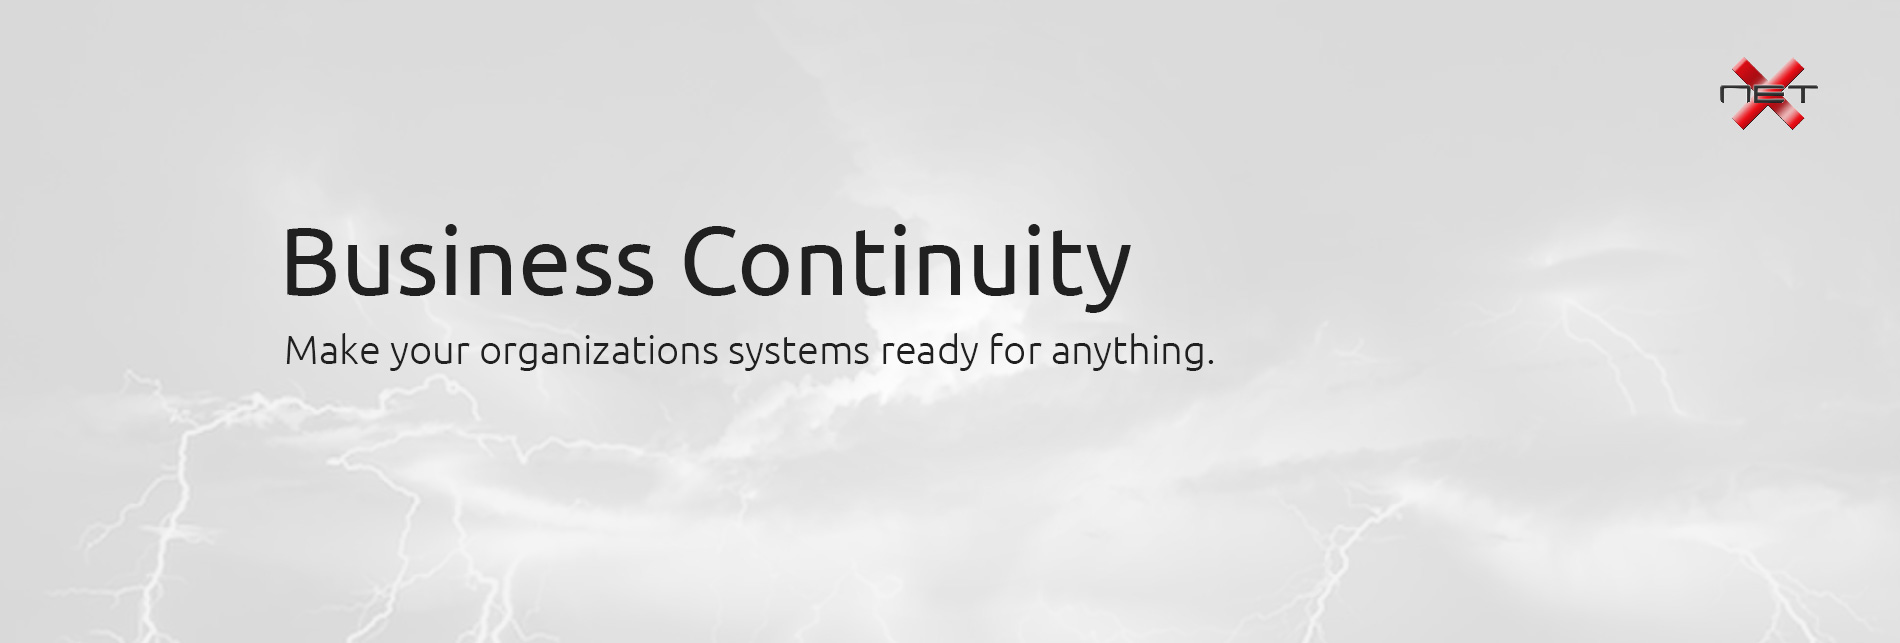 Business Continuity by NetX Information Systems